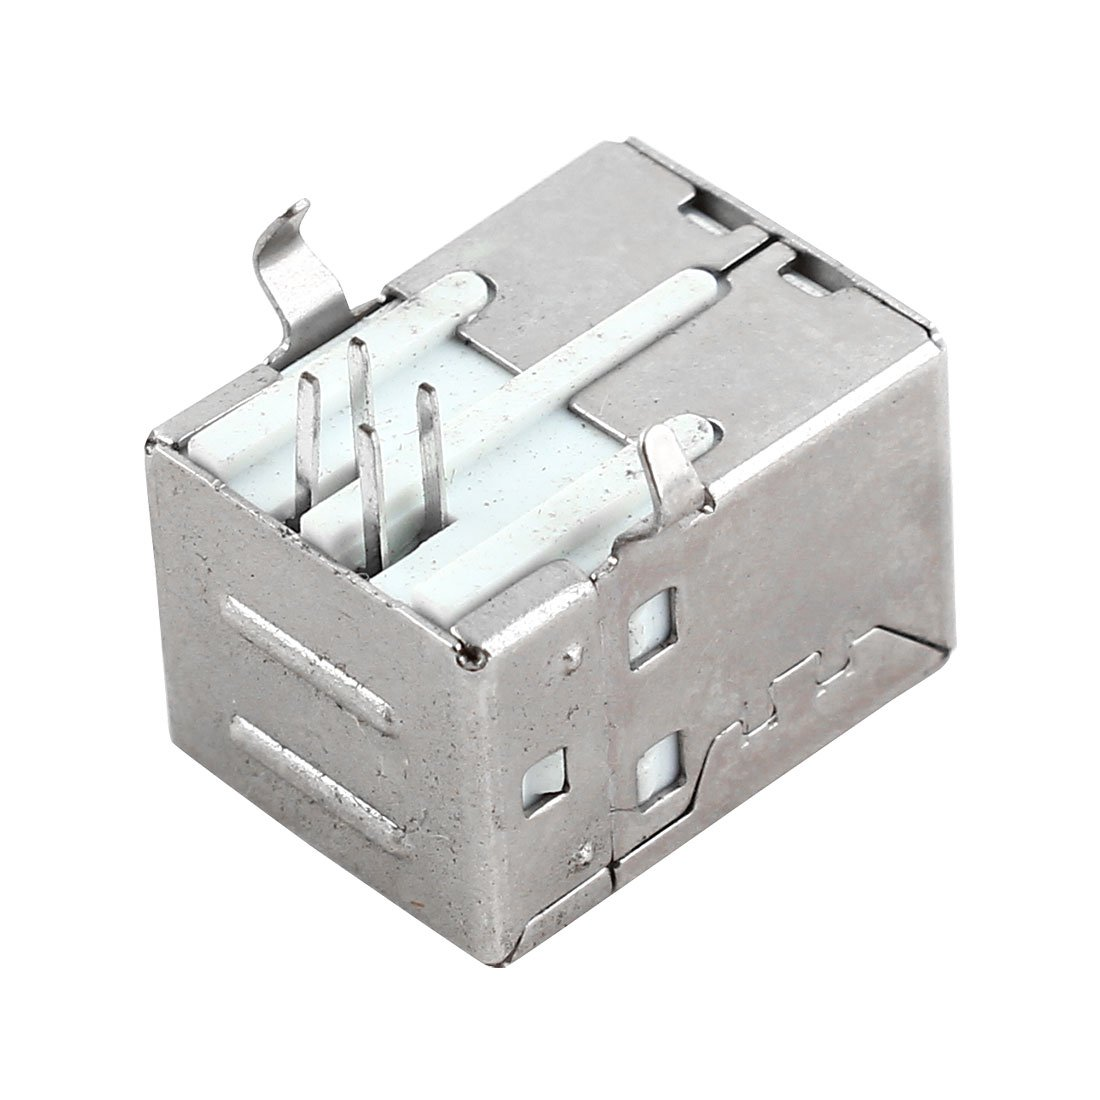 uxcell Shielded USB Type B Female Port 4 Pins PCB Mount Jack Connector Silver Tone by uxcell (Image #2)